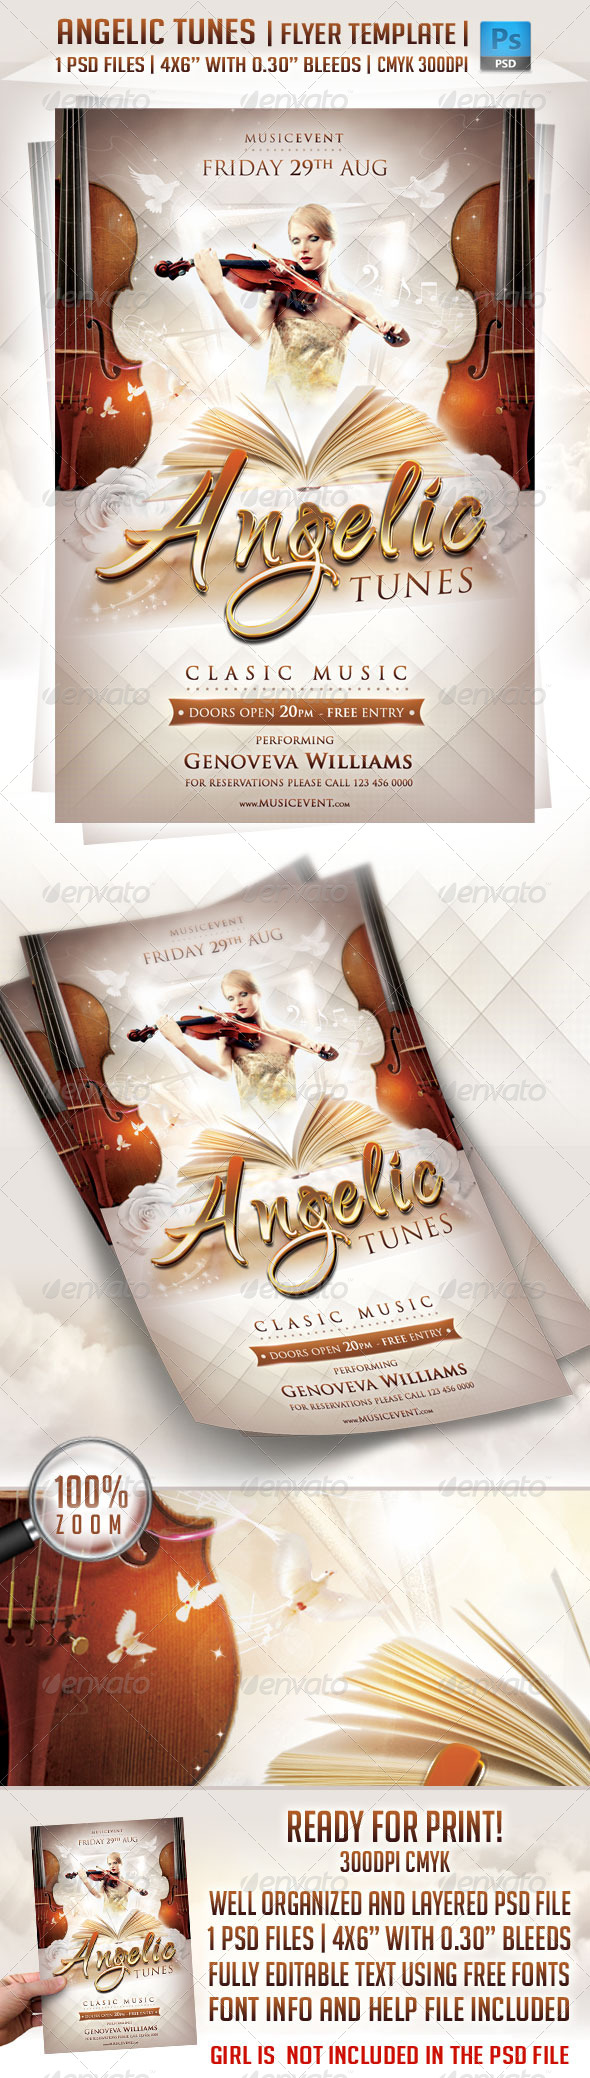 GraphicRiver Angelic Tunes Flyer Template 3139528